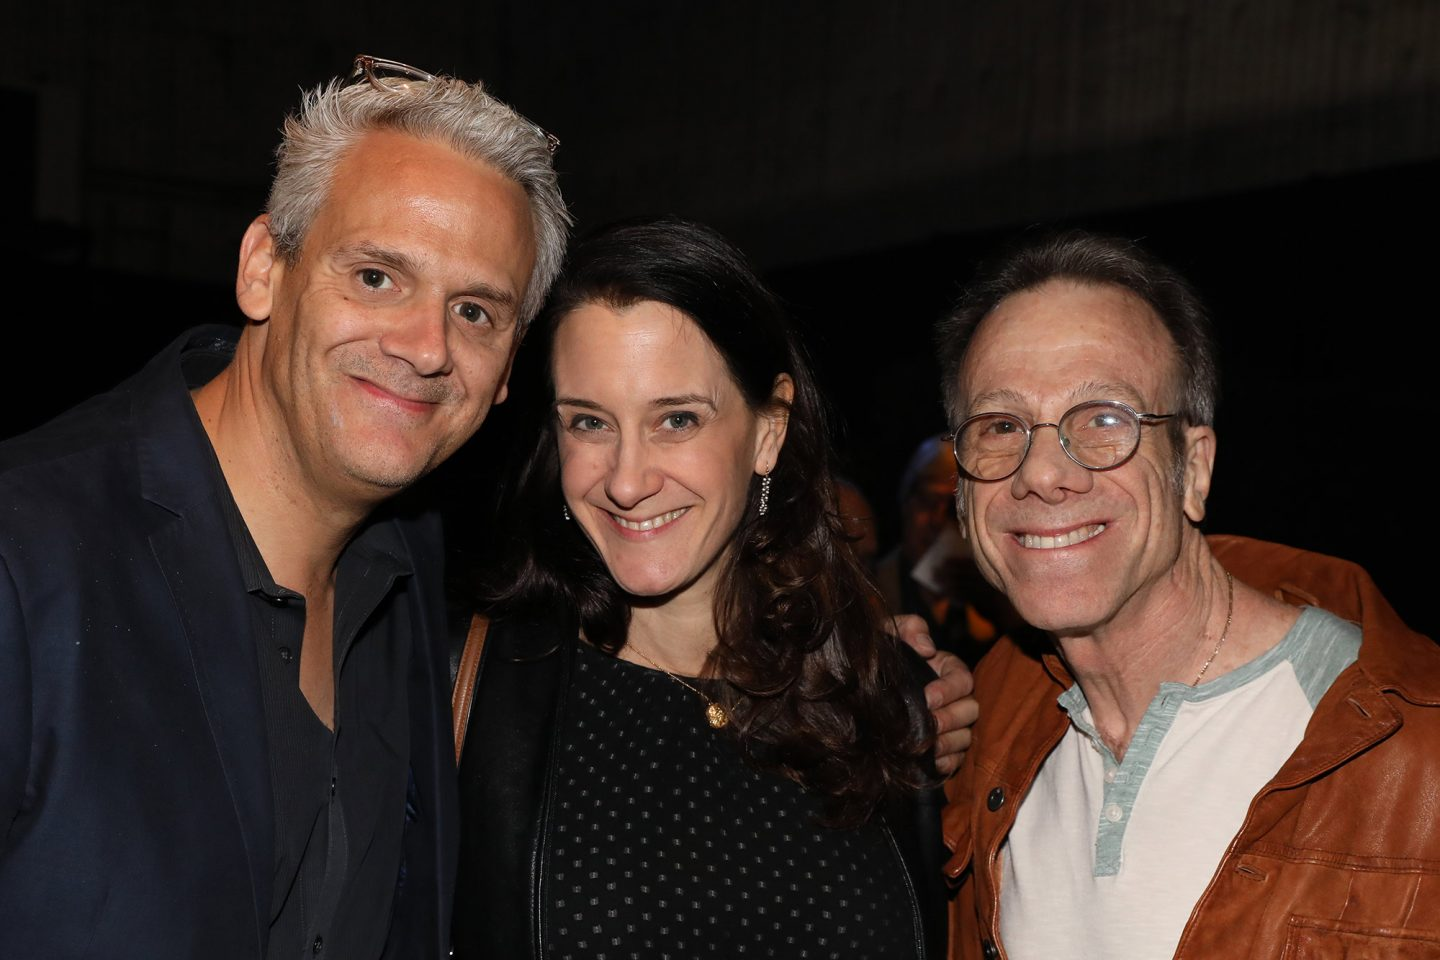 From l-r, Sam Register, Allison Abbate (executive vice president, Warner Animation Group) and Frank Gladstone (executive director, ASIFA-Hollywood).